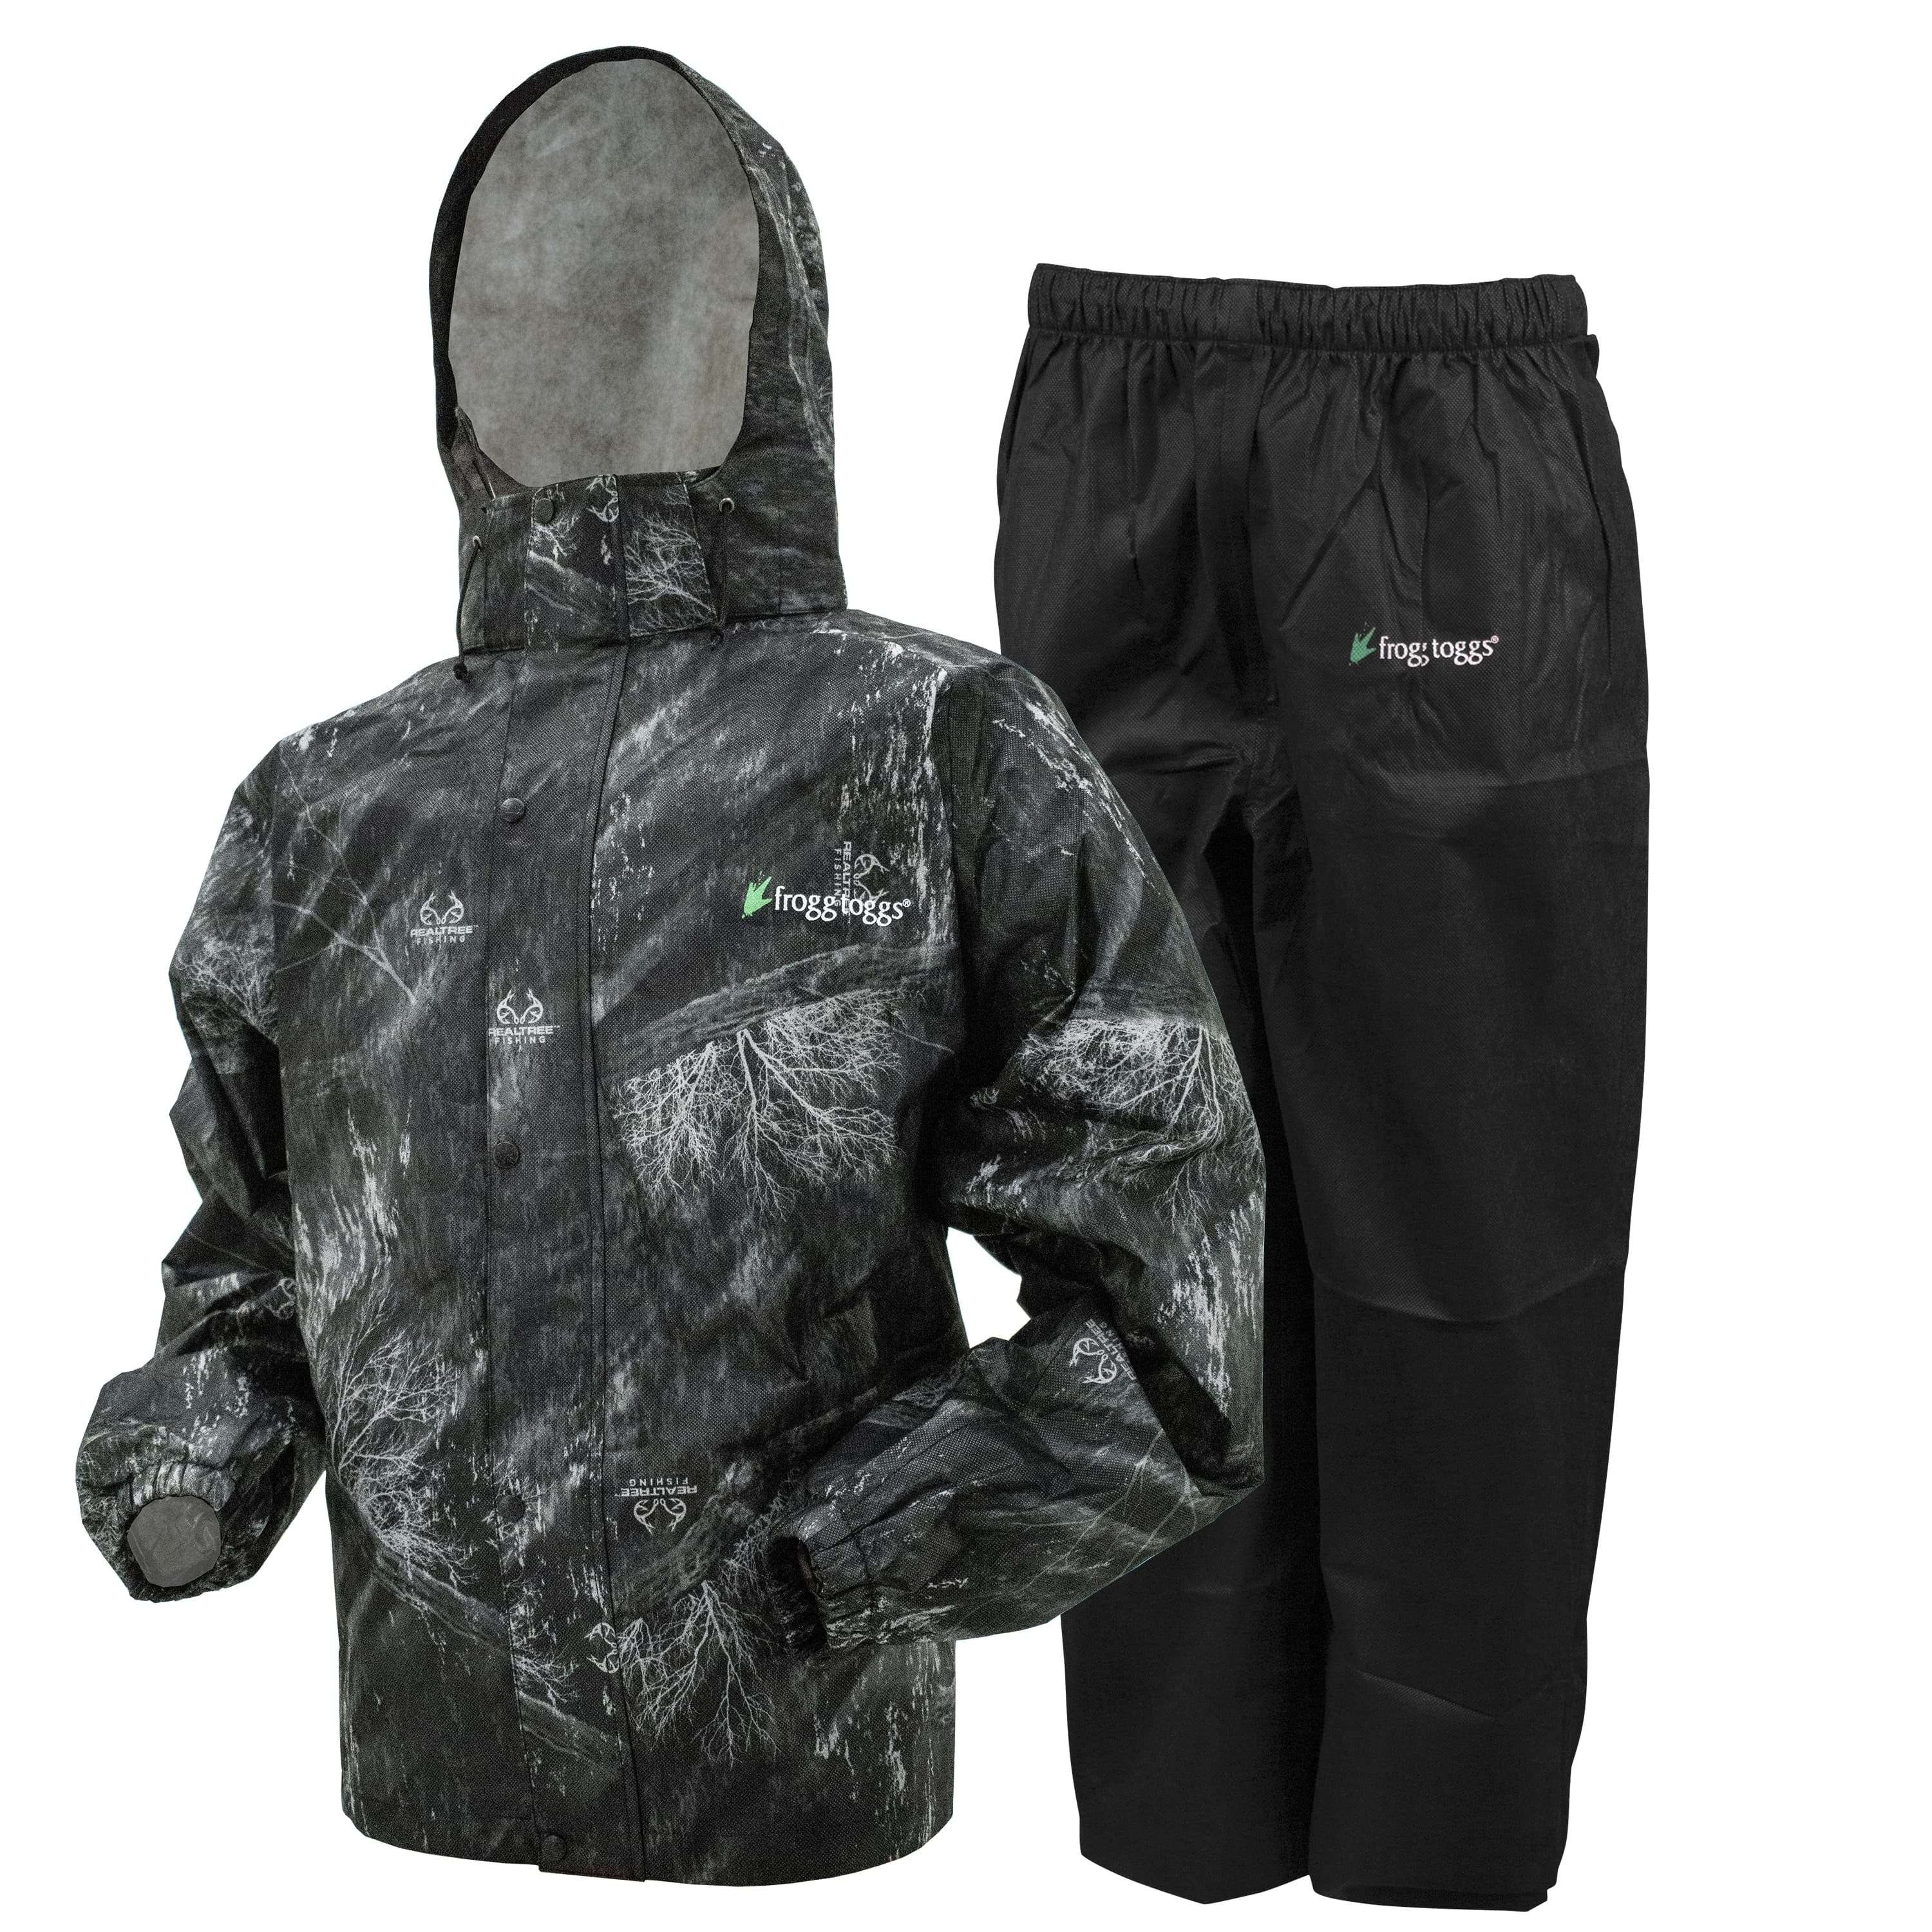 FROGG TOGGS Men/'s 2XL Classic All-Sport Waterproof Breathable Rain Suit AS1310